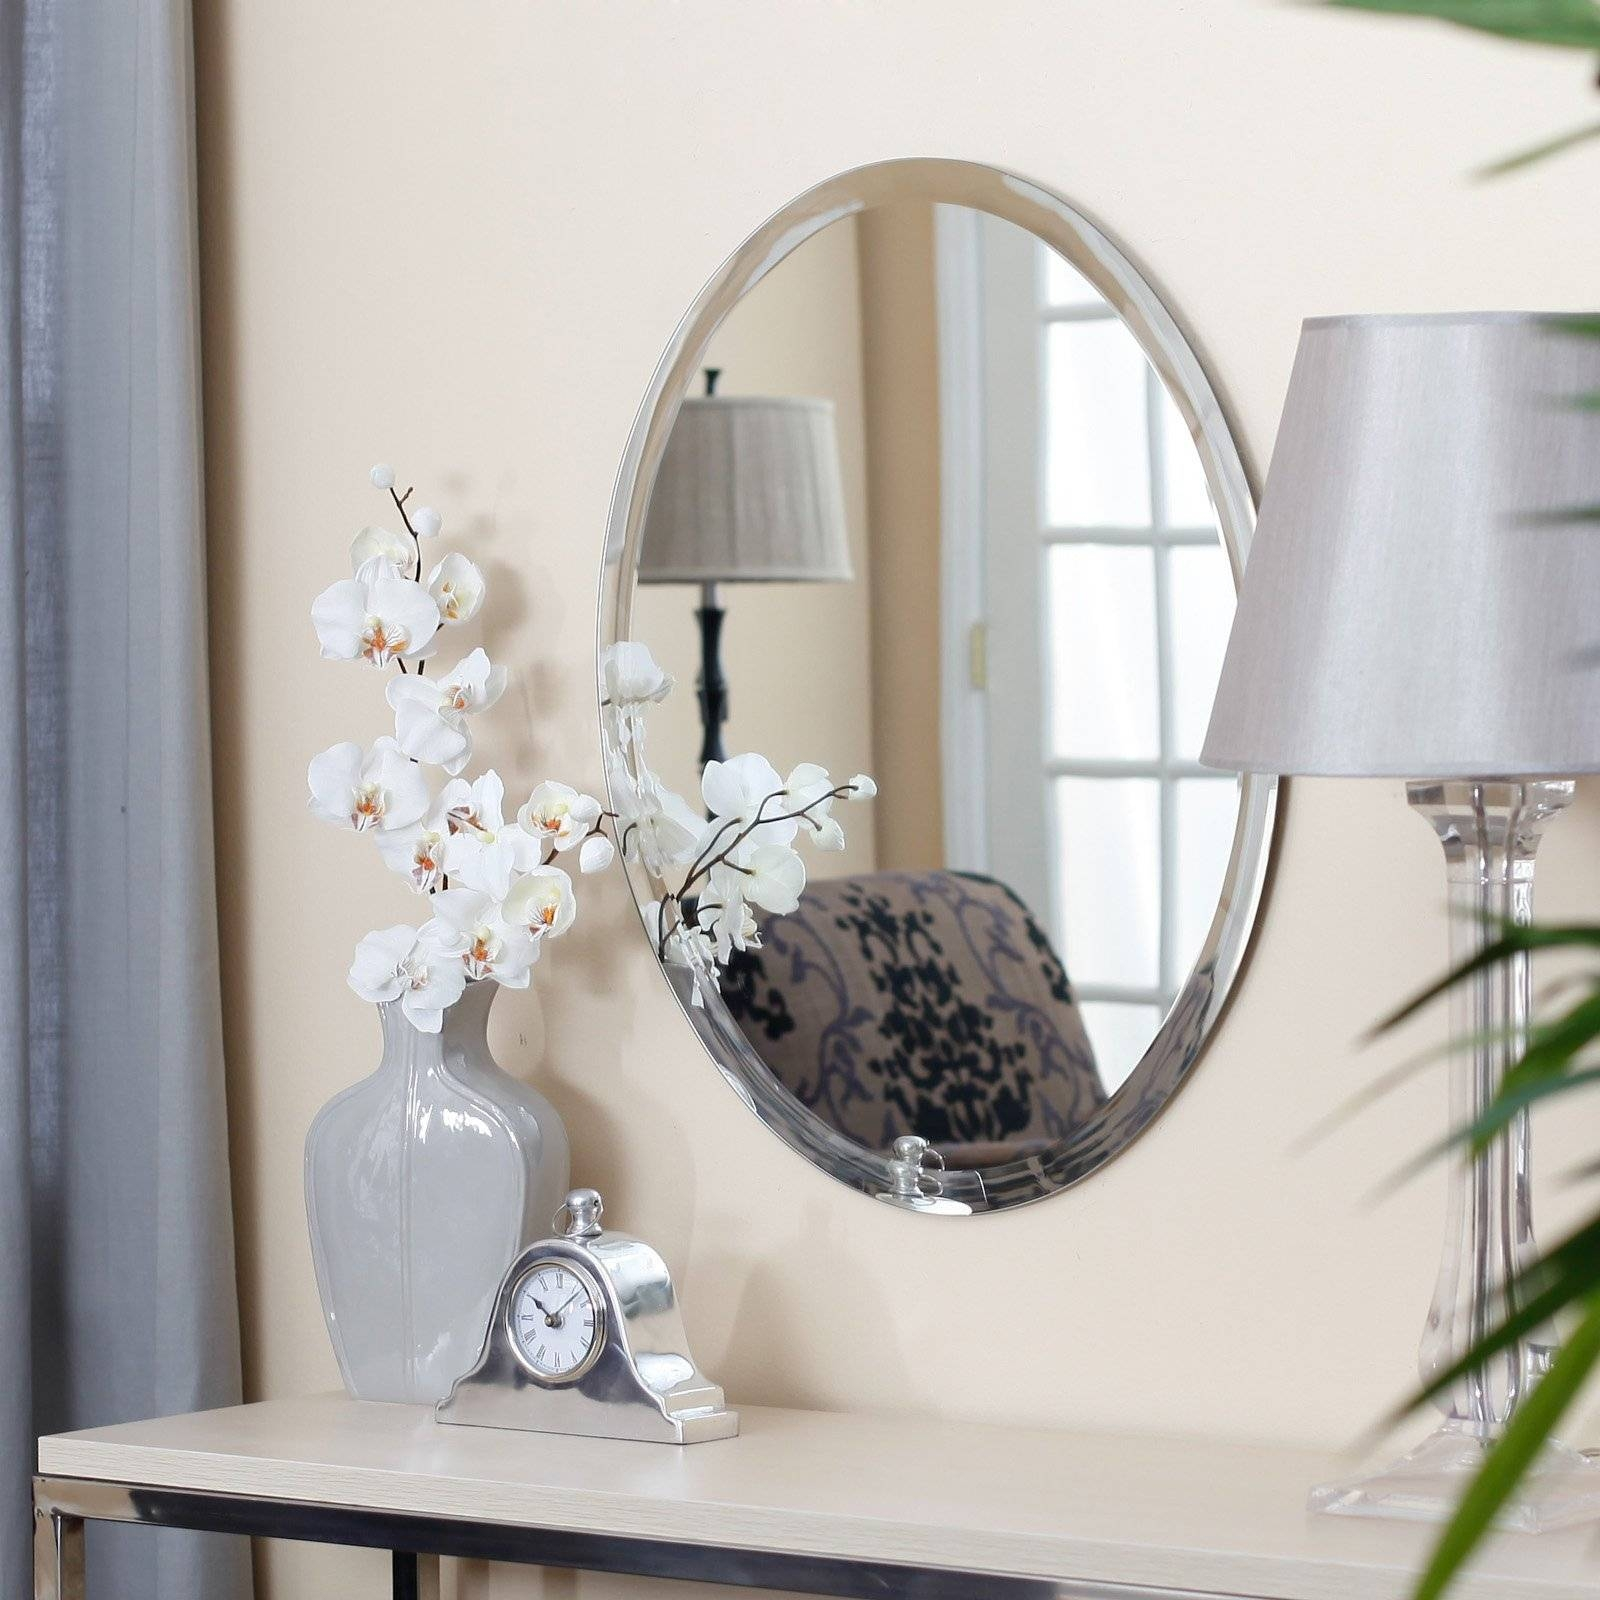 Uttermost Frameless Oval Beveled Vanity Mirror | Hayneedle Intended For Bevelled Oval Mirrors (View 14 of 15)